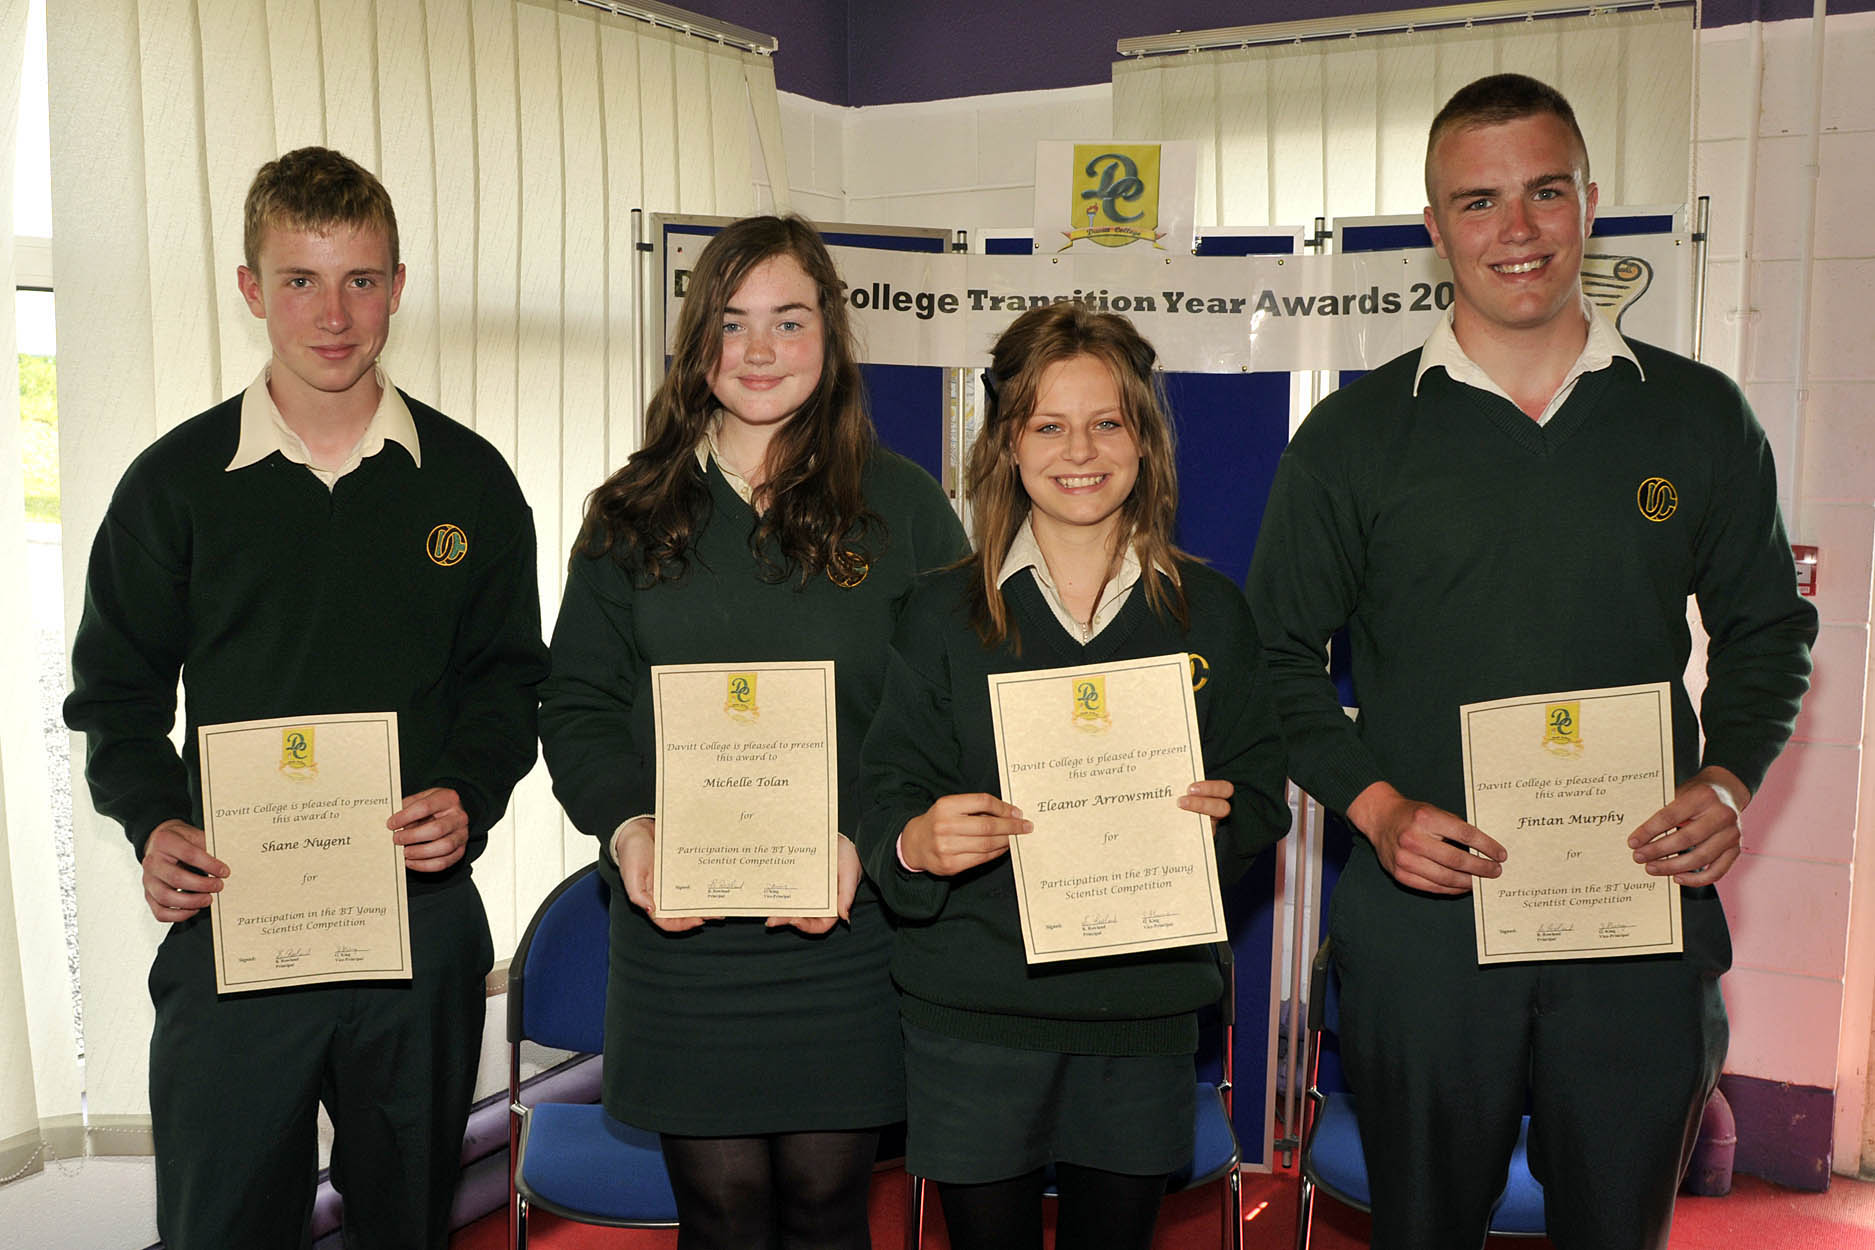 Davitt College Transition Year awards, BT Young Scientist award l-r; Shane Nugent, Michelle Tolan, Eleanor Arrowsmith and Fintan Murphy . Photo © Ken Wright Photography 2012.